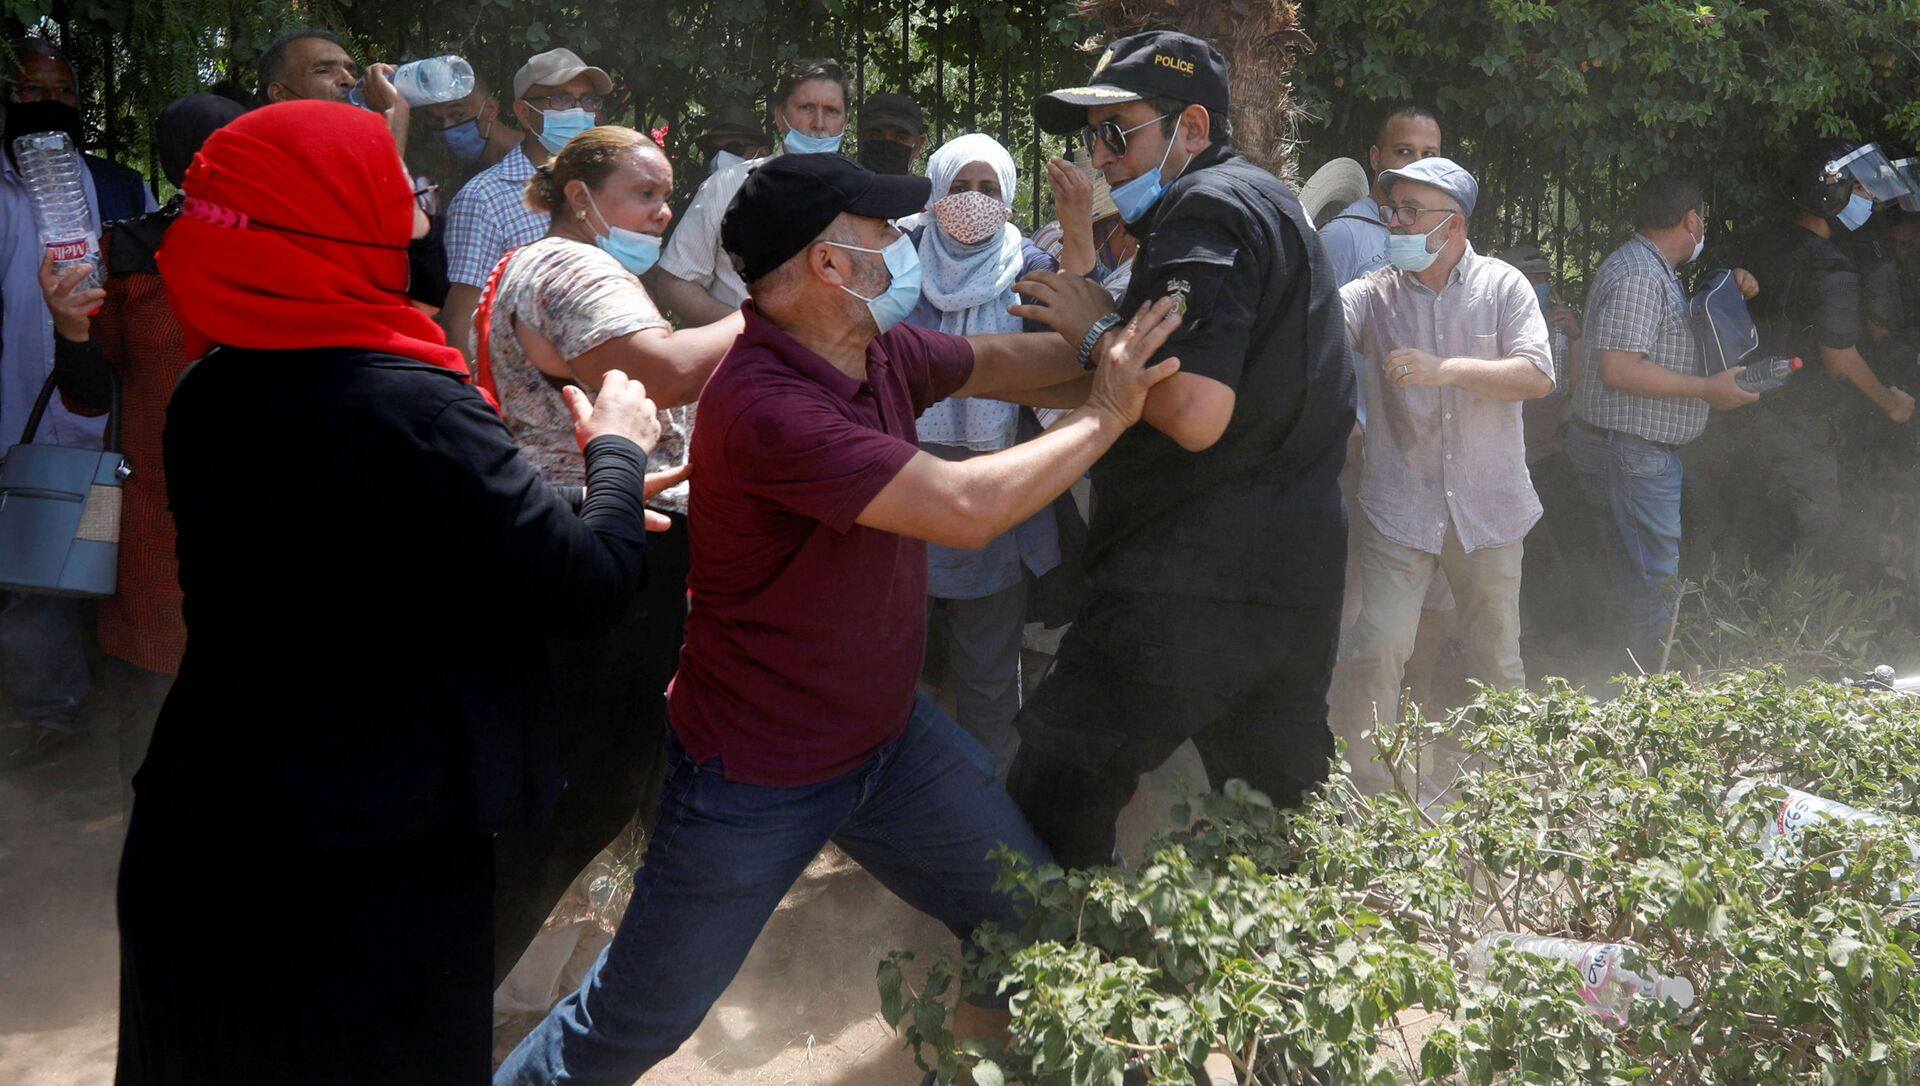 A supporter of Tunisia's biggest political party, the moderate Islamist Ennahda, scuffles with a police officer near the parliament building in Tunis, Tunisia July 26, 2021. - Sputnik International, 1920, 26.07.2021